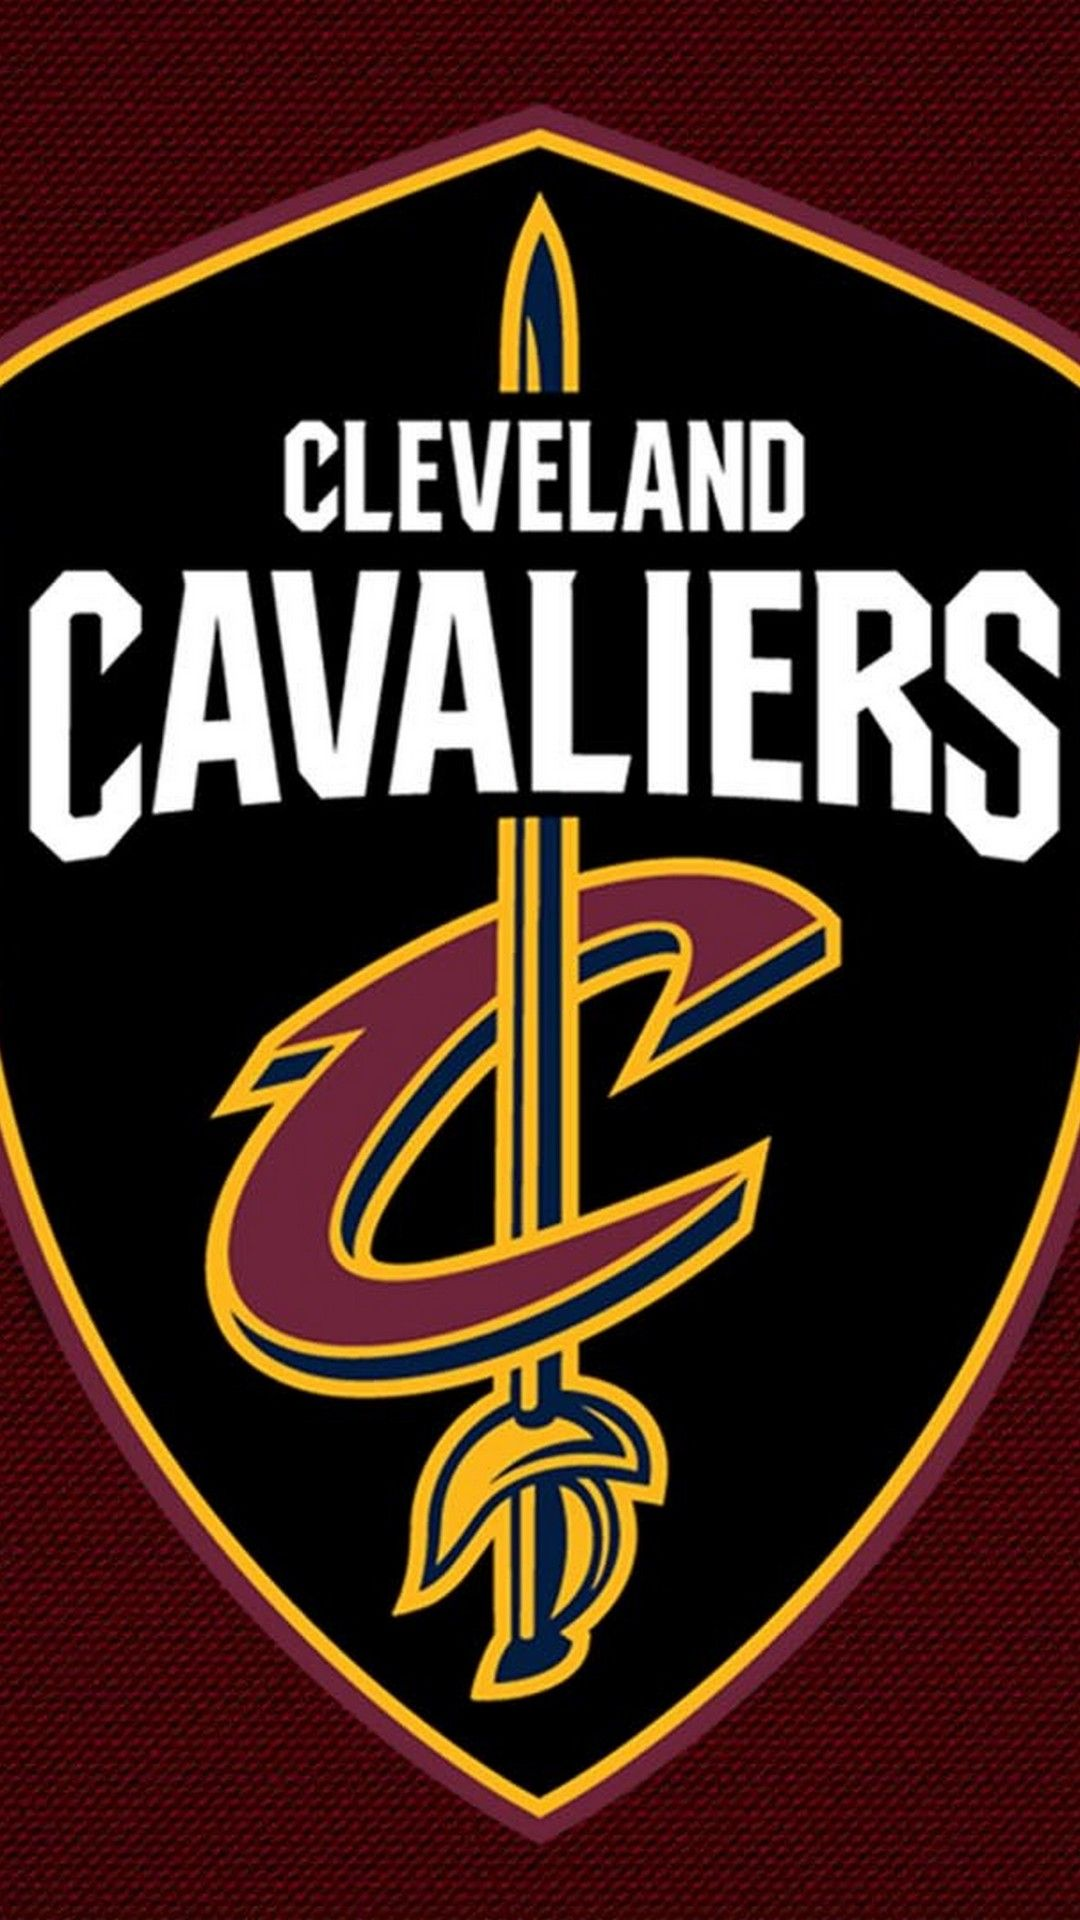 Cleveland Cavaliers Nba Iphone Wallpapers 2021 Basketball Wallpaper Cavaliers Nba Basketball Wallpaper Basketball Wallpapers Hd